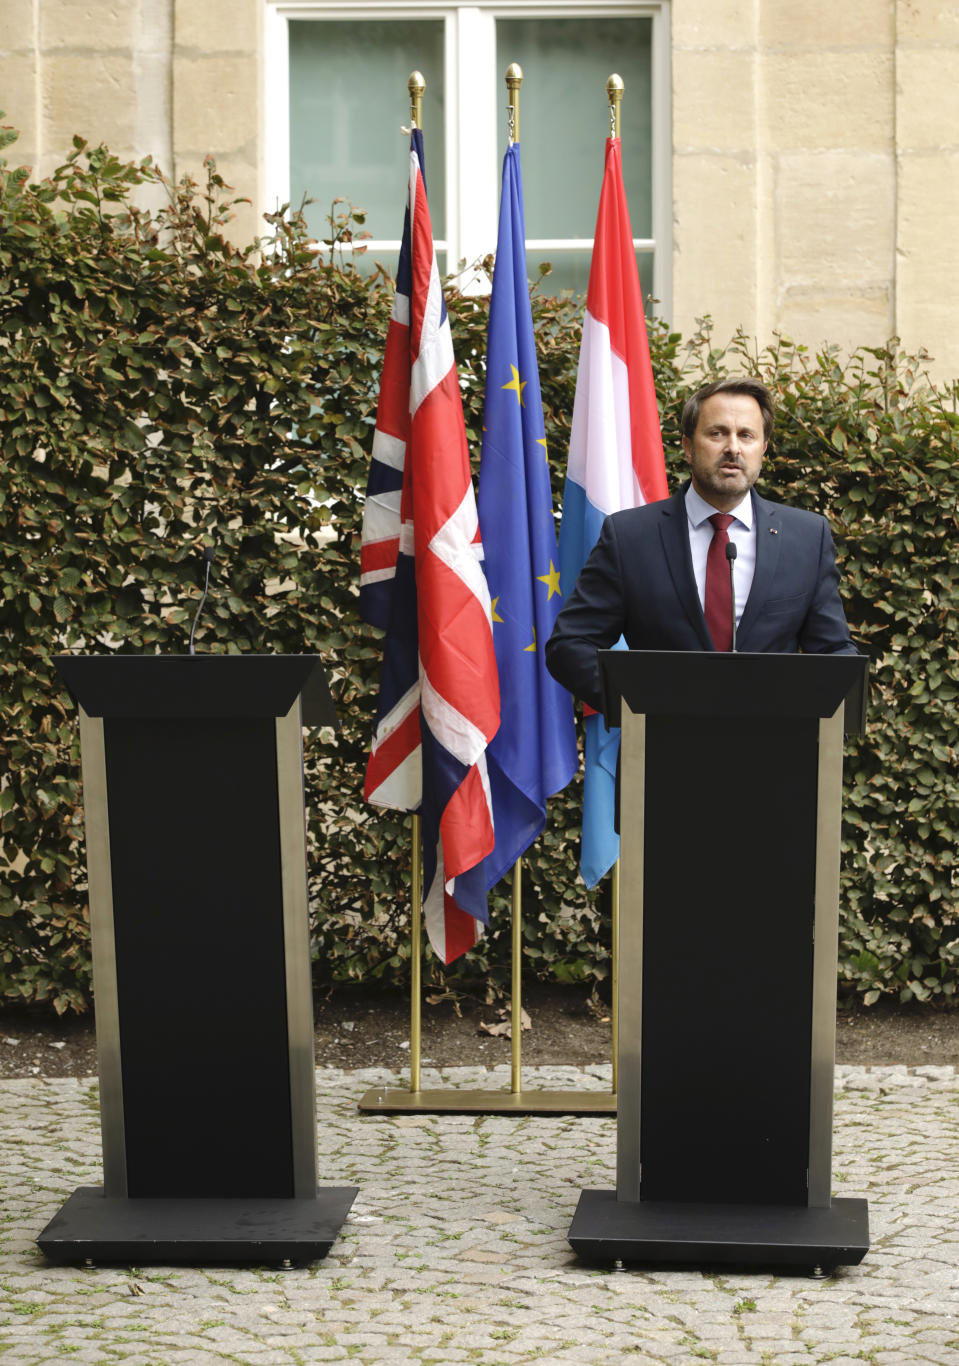 Luxembourg's prime minister, speaking at his now solo press conference, said that he knows the UK Government is unhappy with the Withdrawal Agreement as it stands.